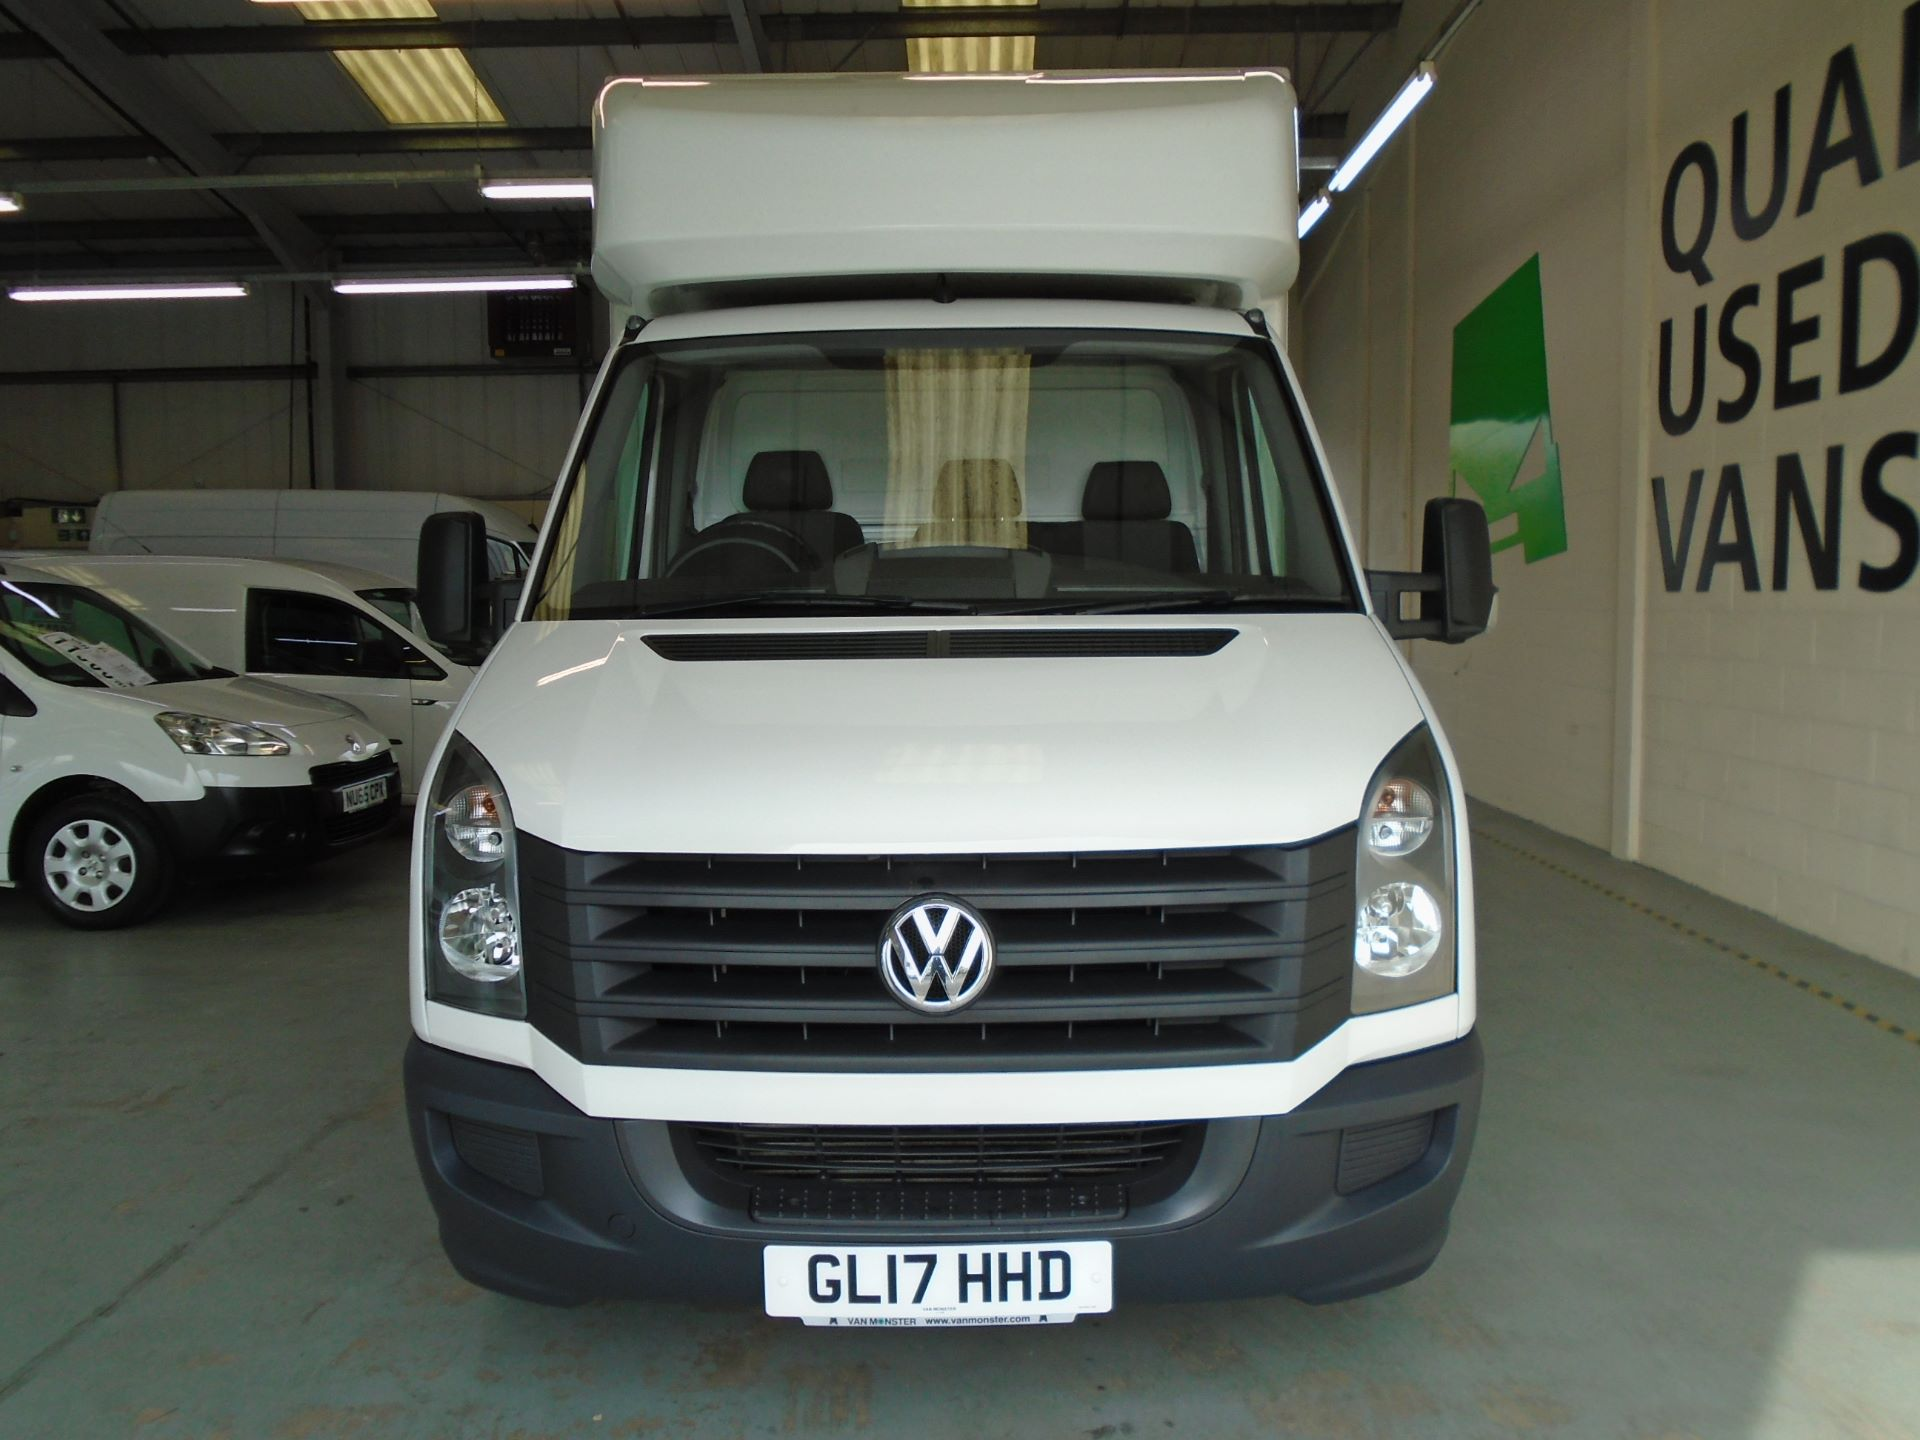 2017 Volkswagen Crafter 2.0 Tdi Bmt 140Ps LWB Luton Tail-Lift (GL17HHD) Image 2